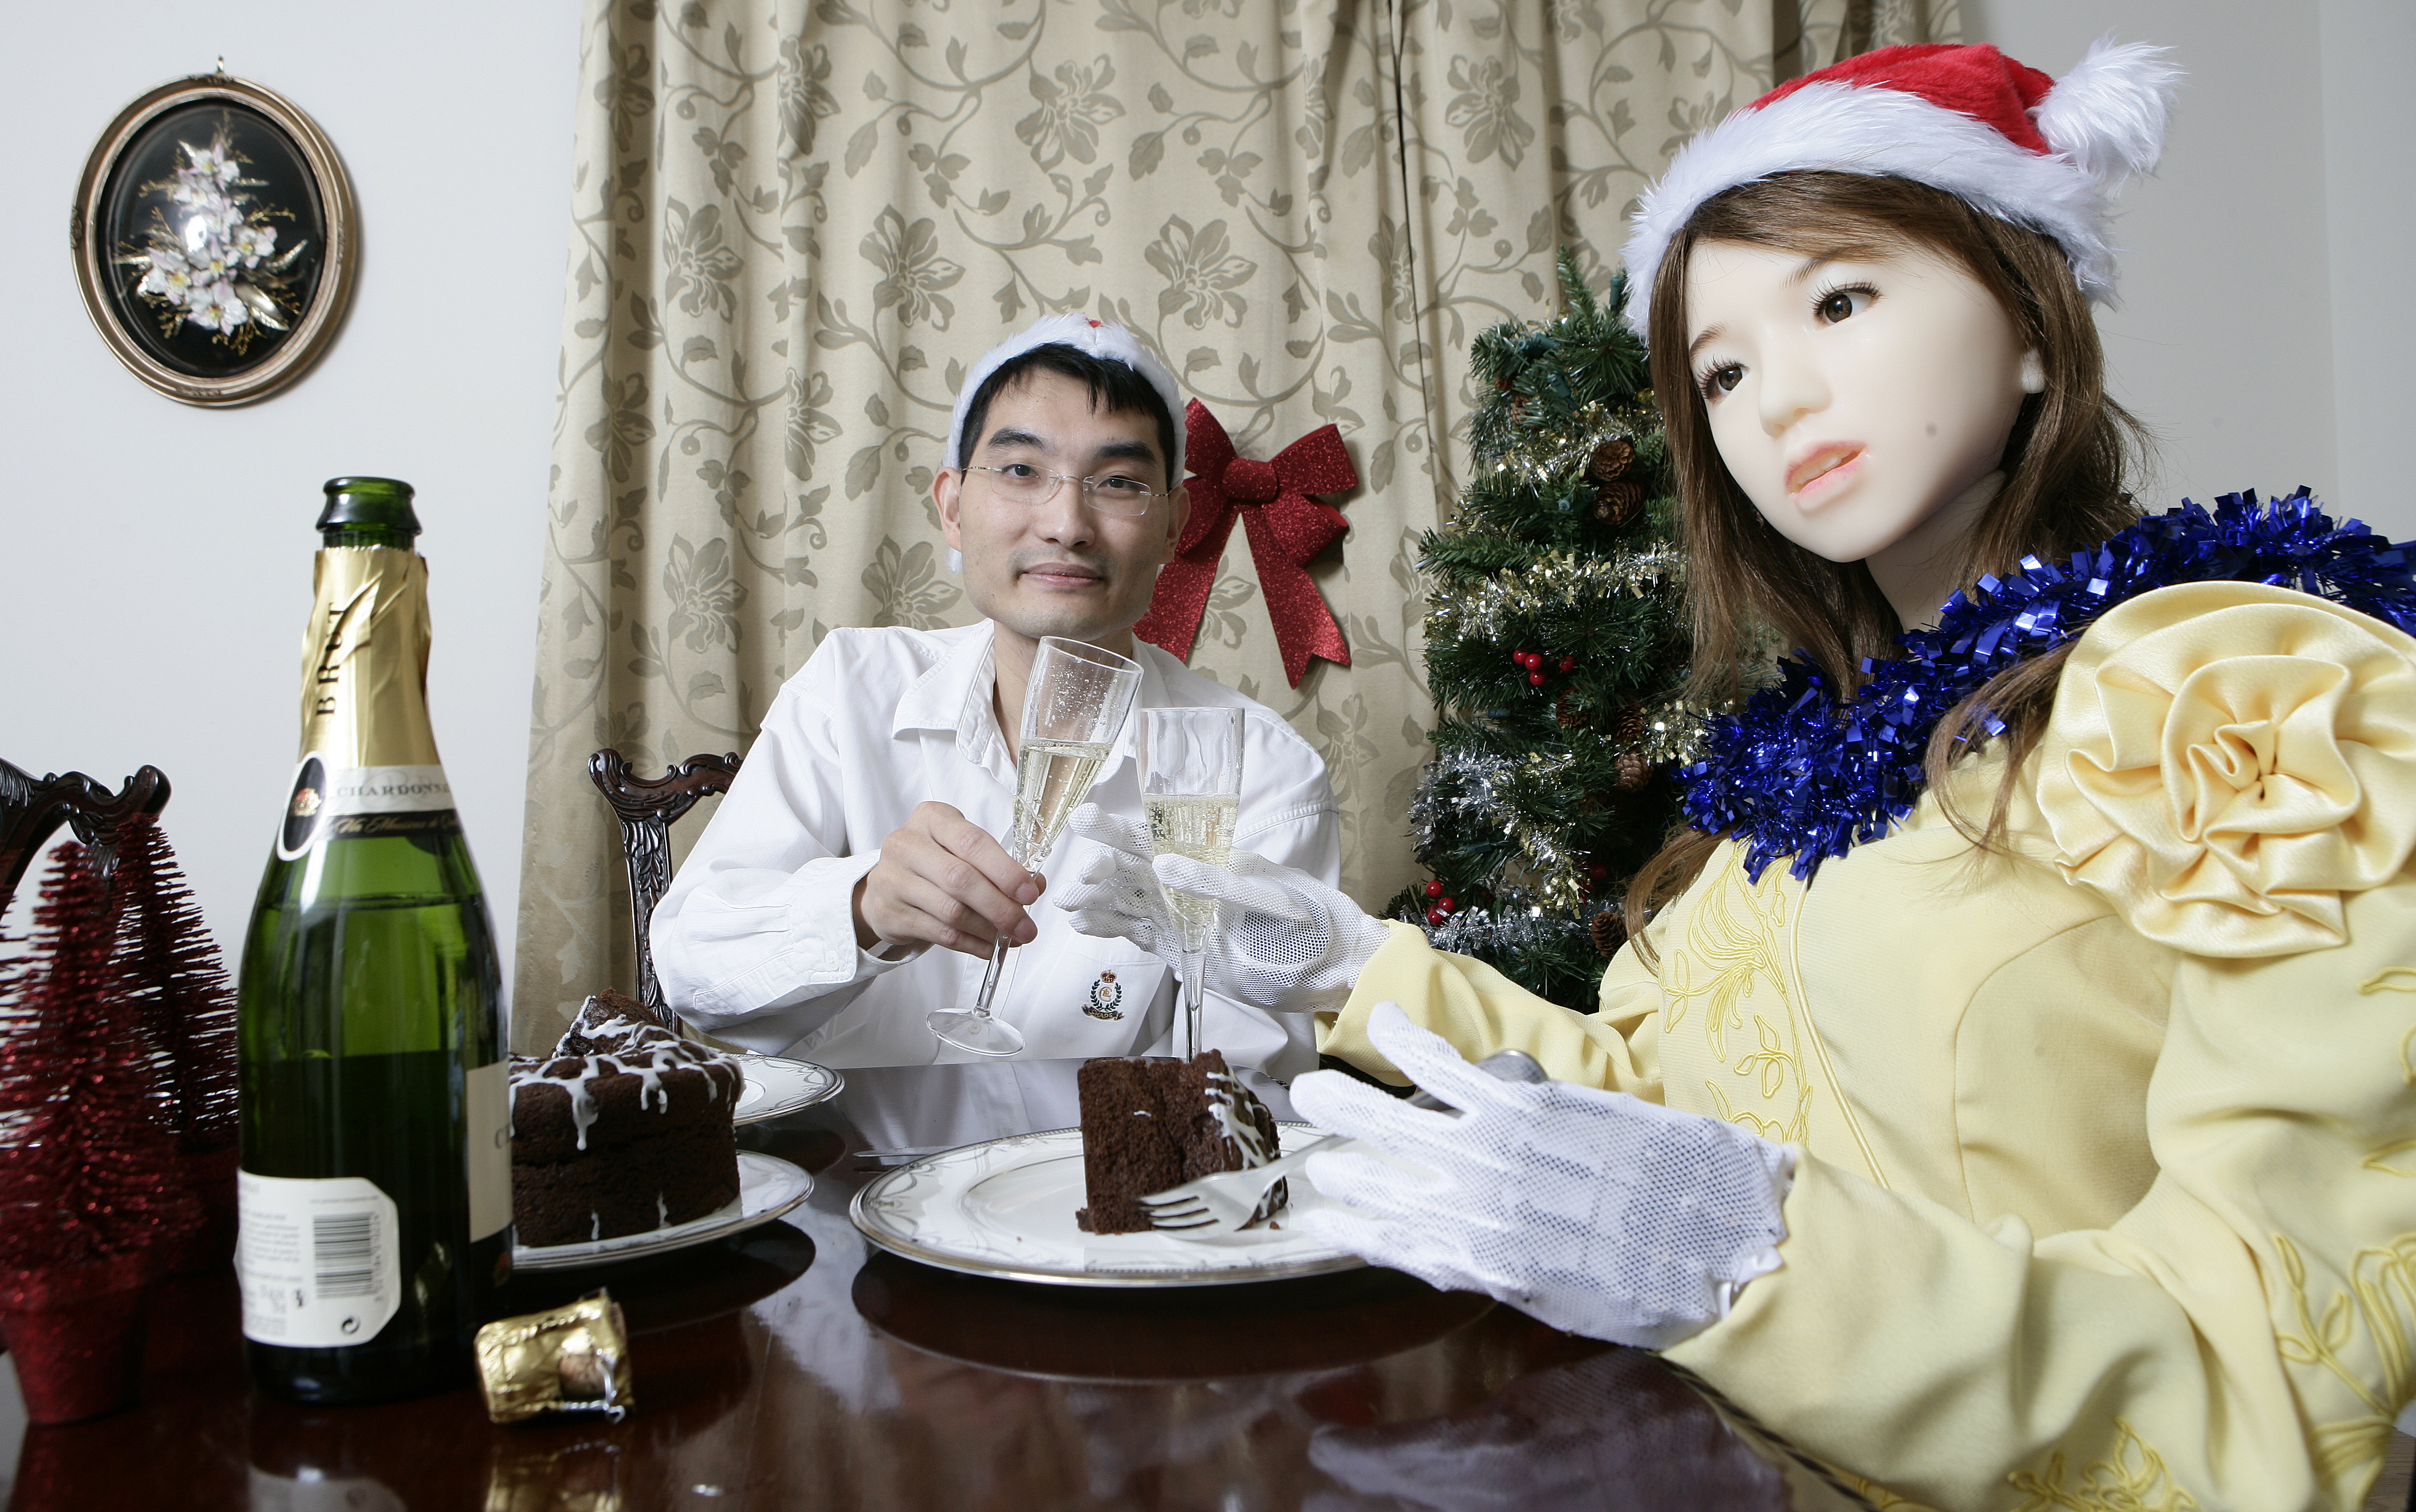 Inventor Le Trung celebrates Christmas with his robot Aiko on December 23, 2009 in Brampton, Ontario, Canada.